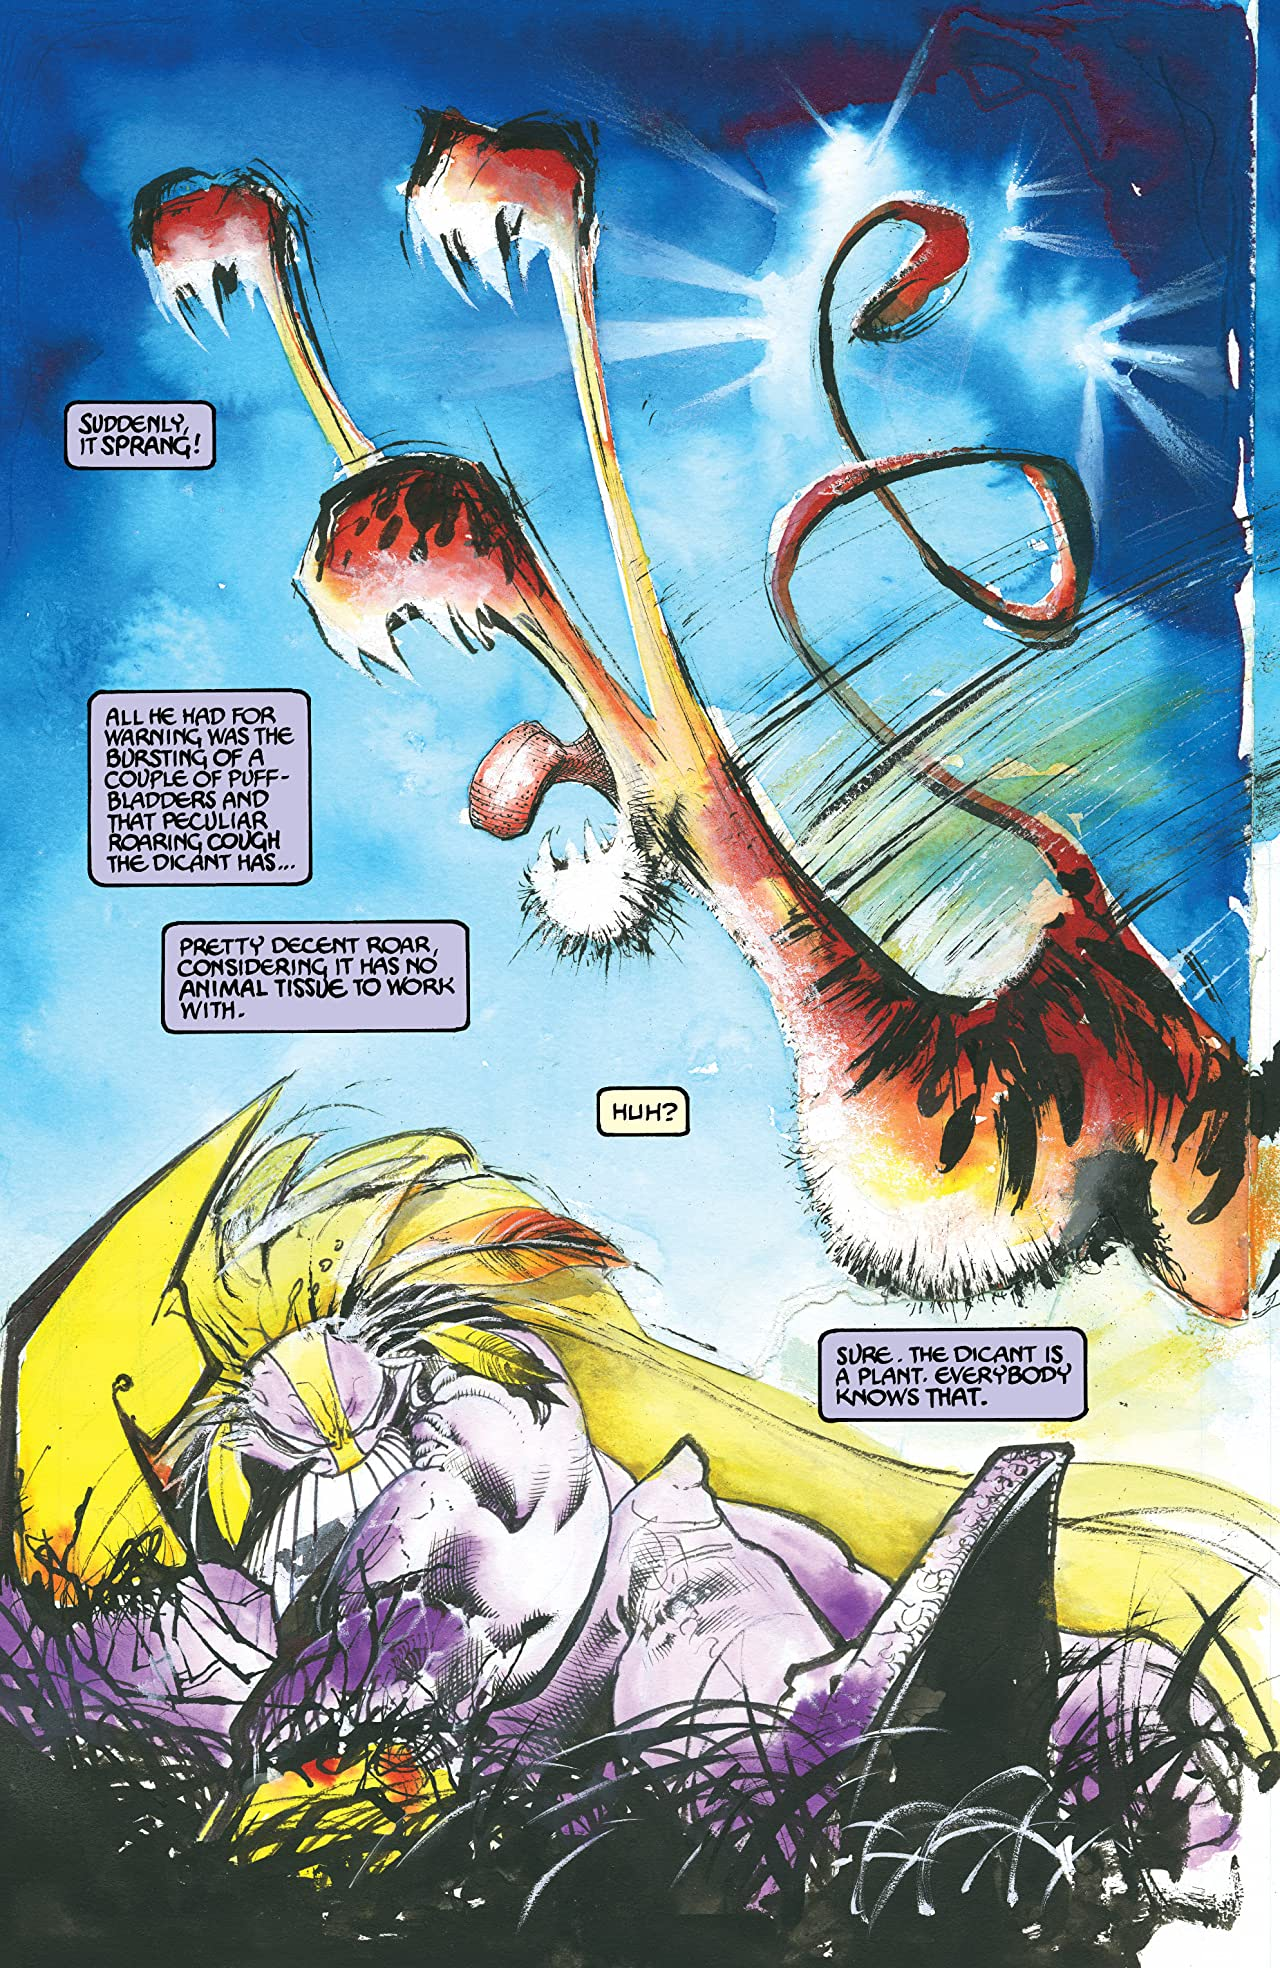 The Maxx: Maxximized Vol. 3